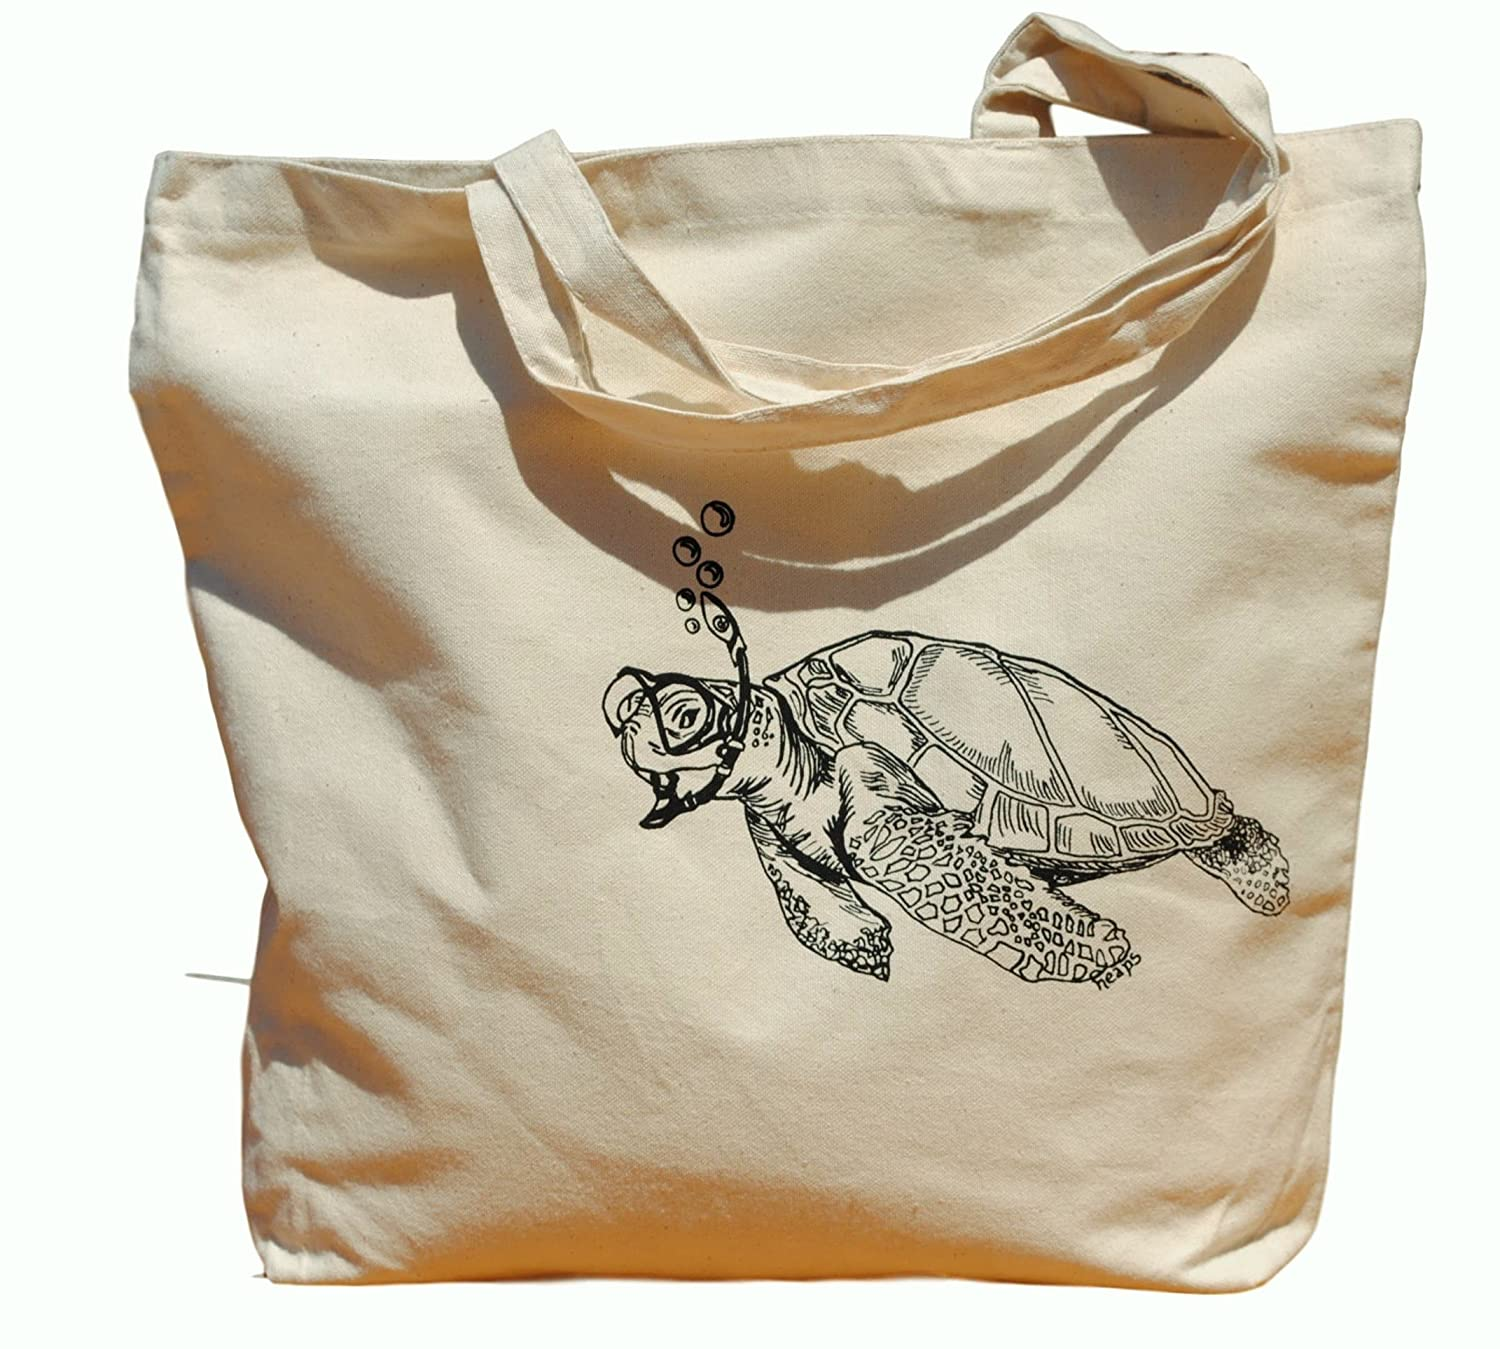 Canvas Tote Bag - Hand Printed Snorkeling Turtle - Market Travel Beach Shopper Grocery School